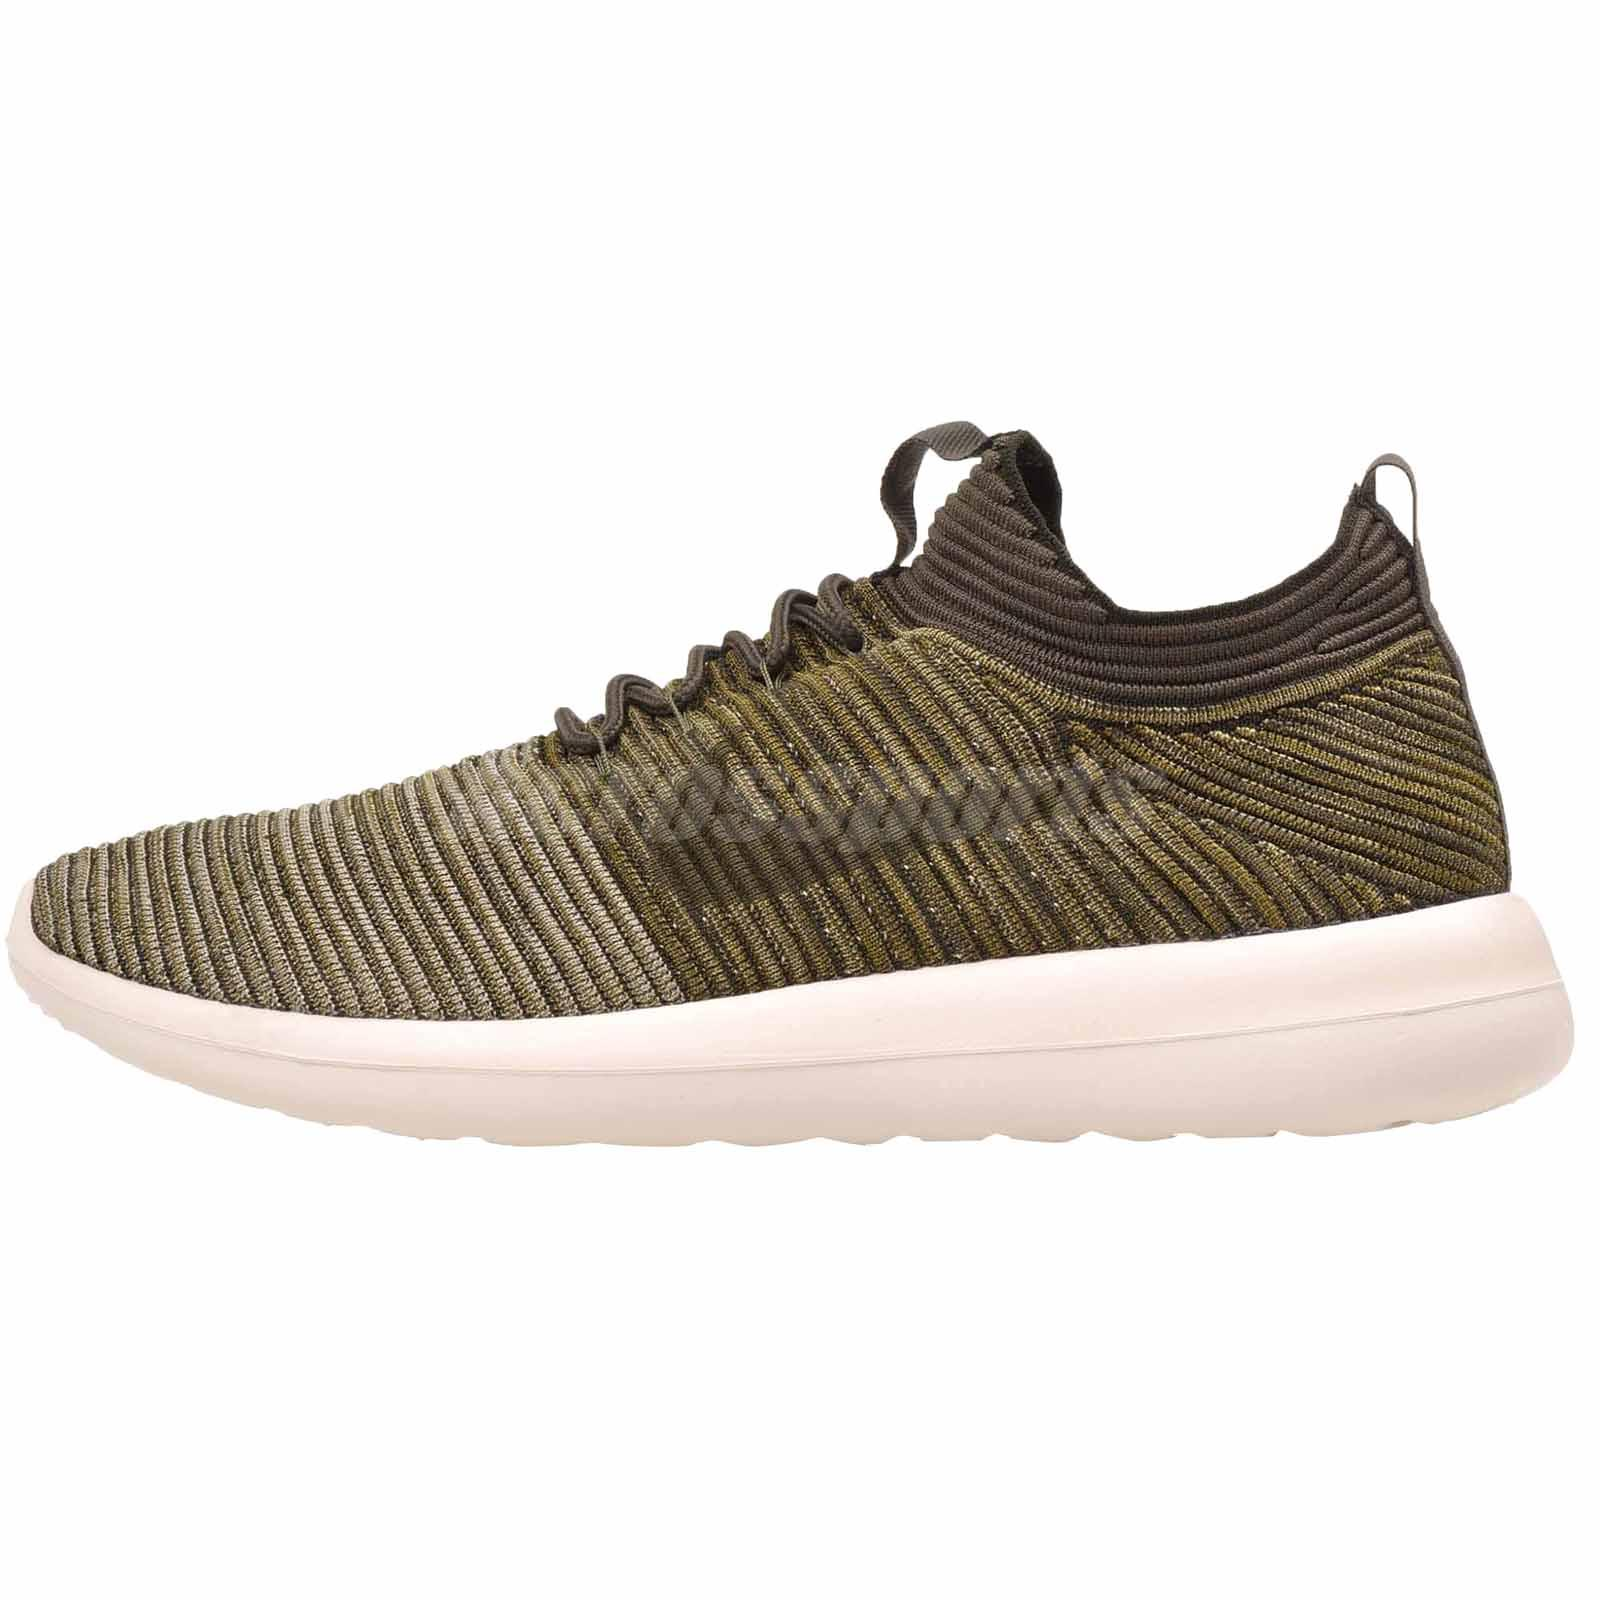 4964eaea586f5 ... italy nike roshe two flyknit v2 running mens shoes sequoia 918263 301  a9be0 095ed